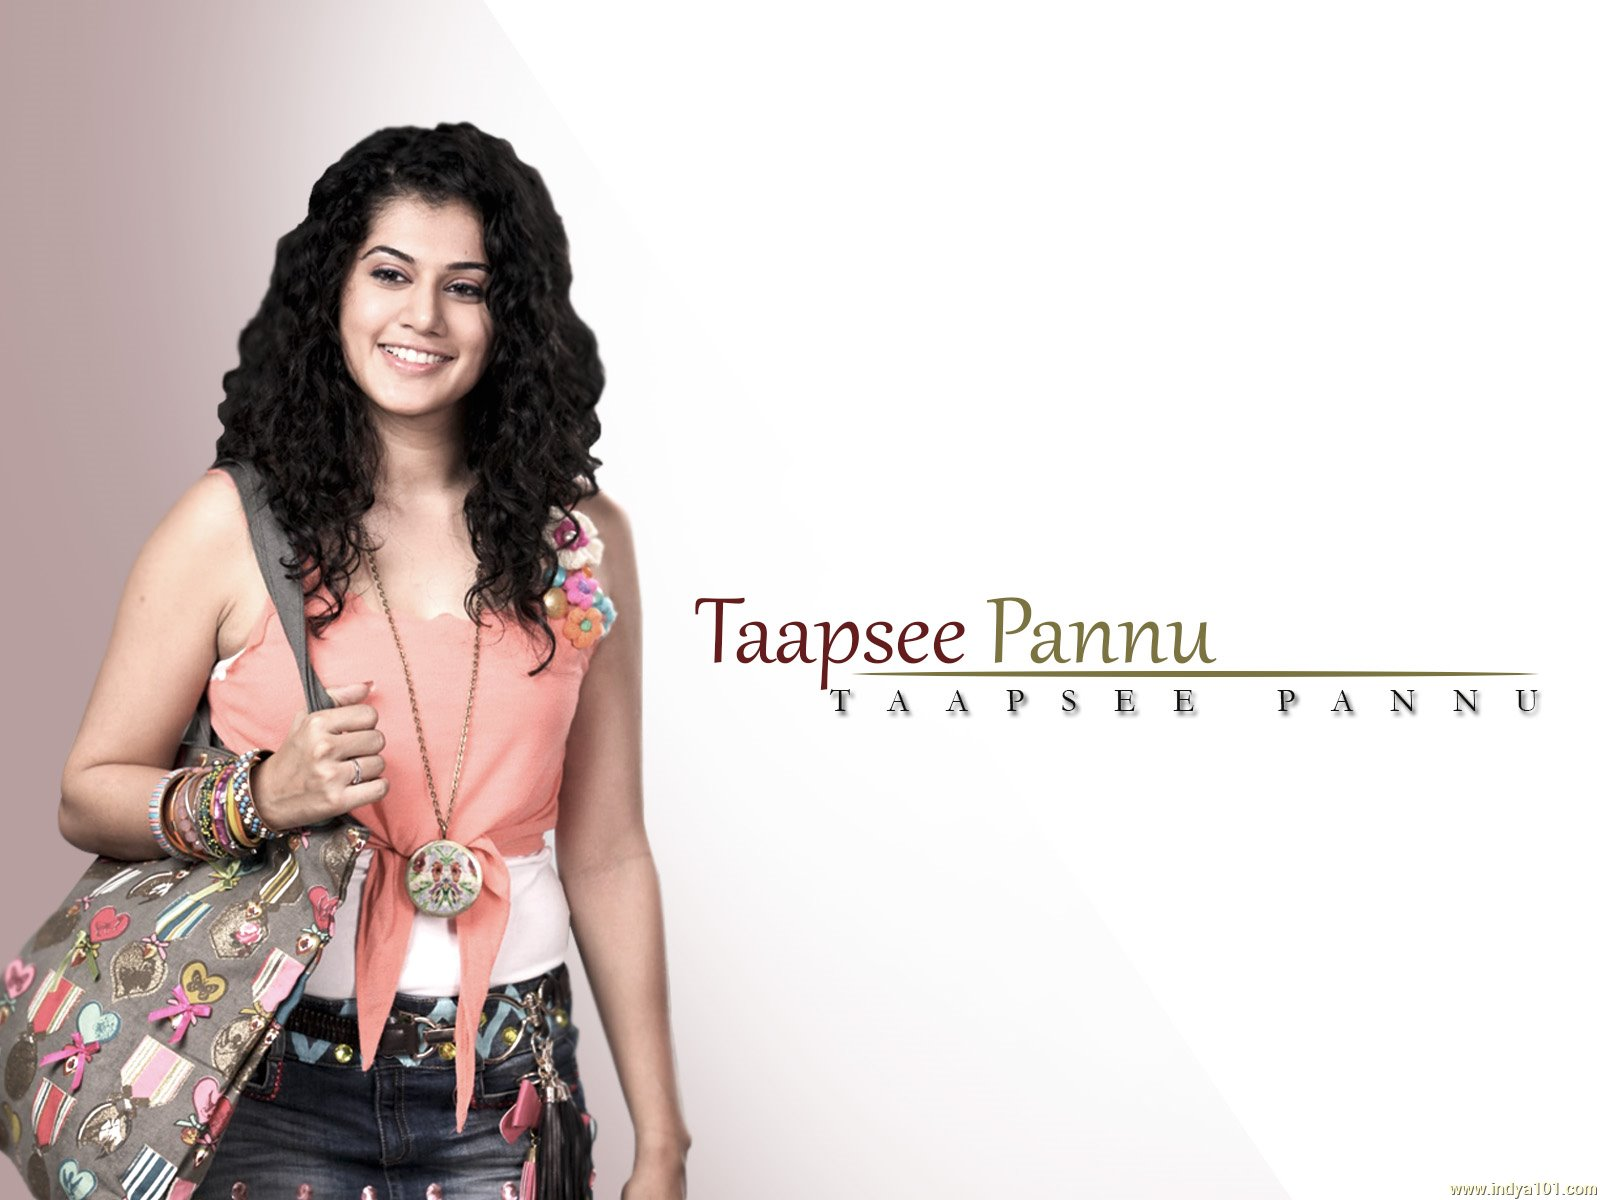 1600x1200 - Tapsee pannu Wallpapers 9